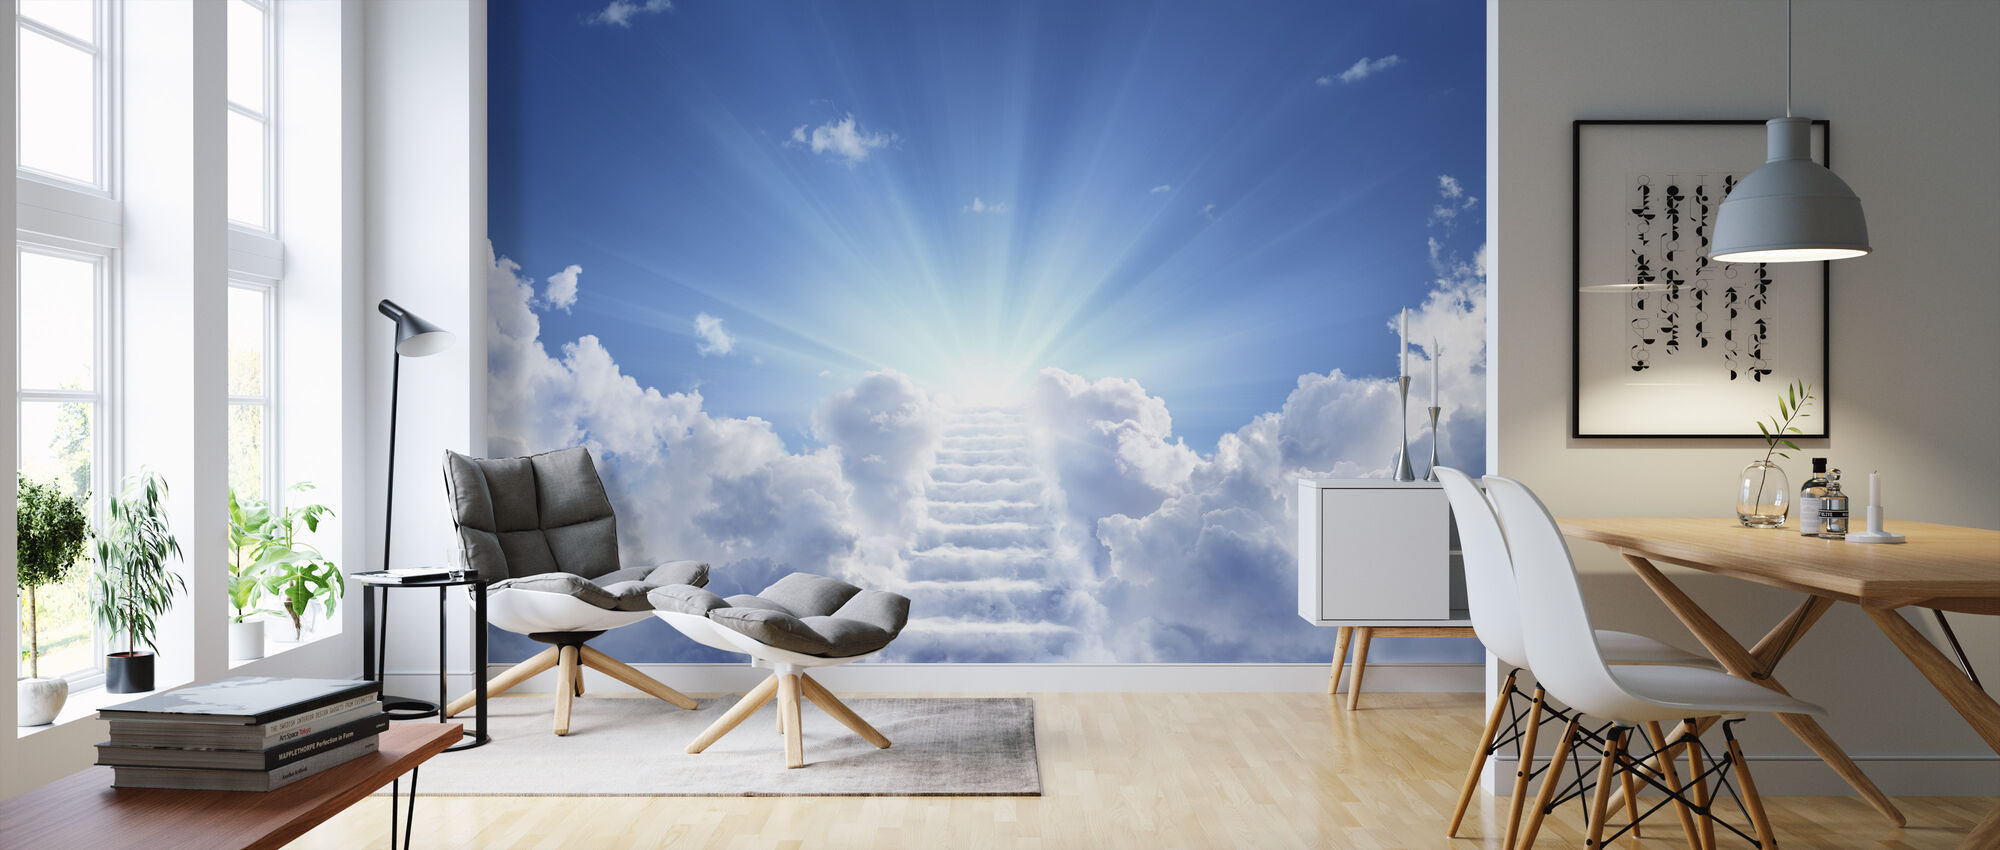 Cloudy Stairs - Wallpaper - Living Room